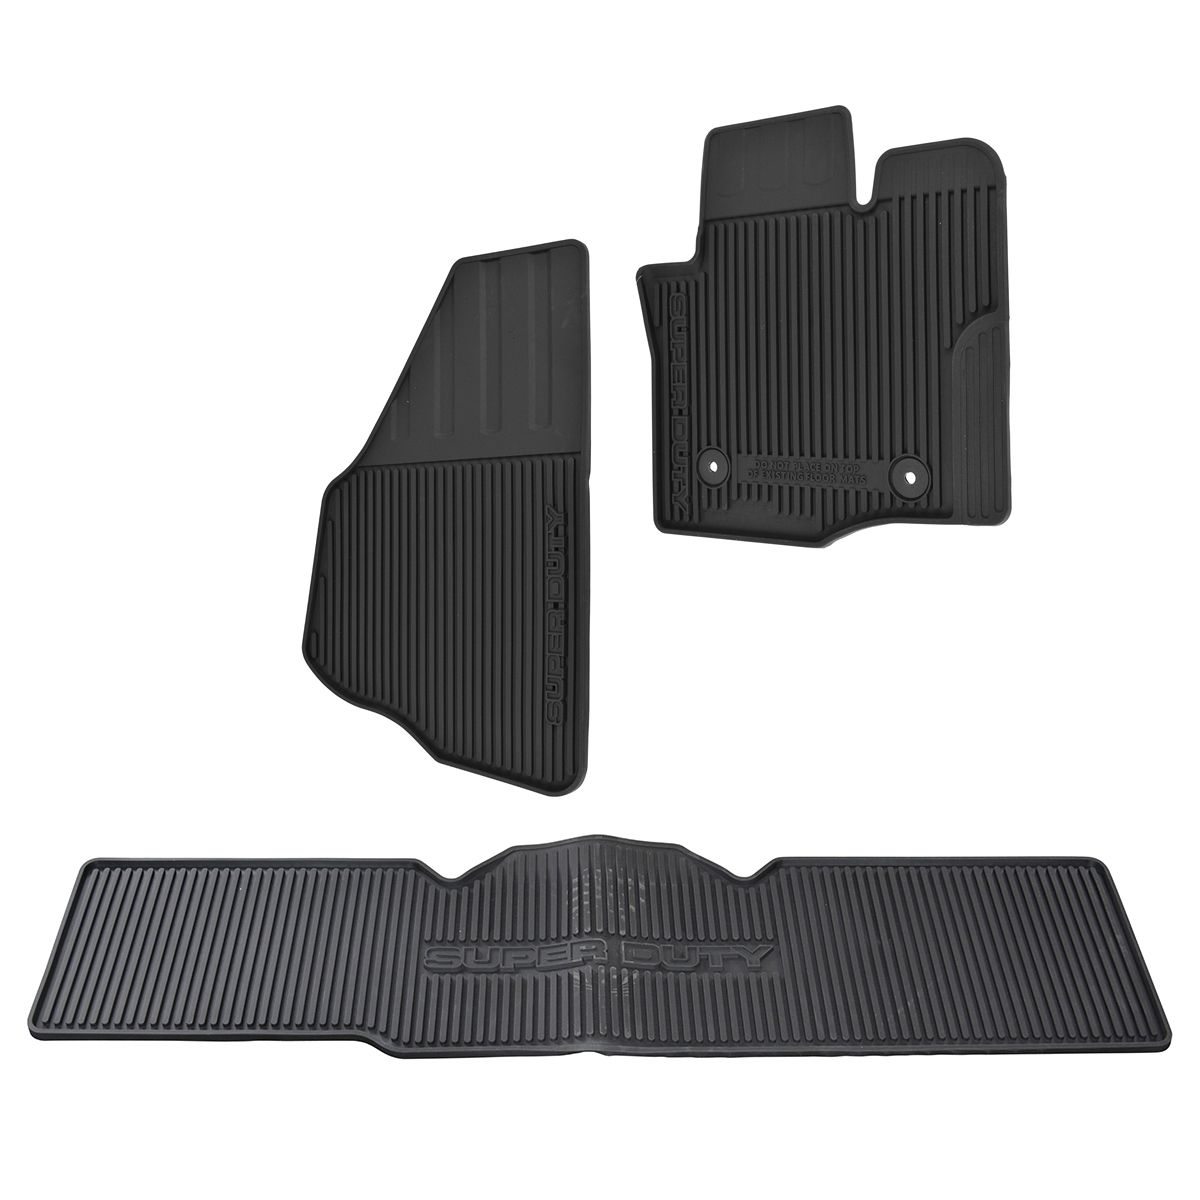 OEM Molded Rubber Floor Mat Kit Set of 3 for Ford F250 F350 Super Duty Super Cab